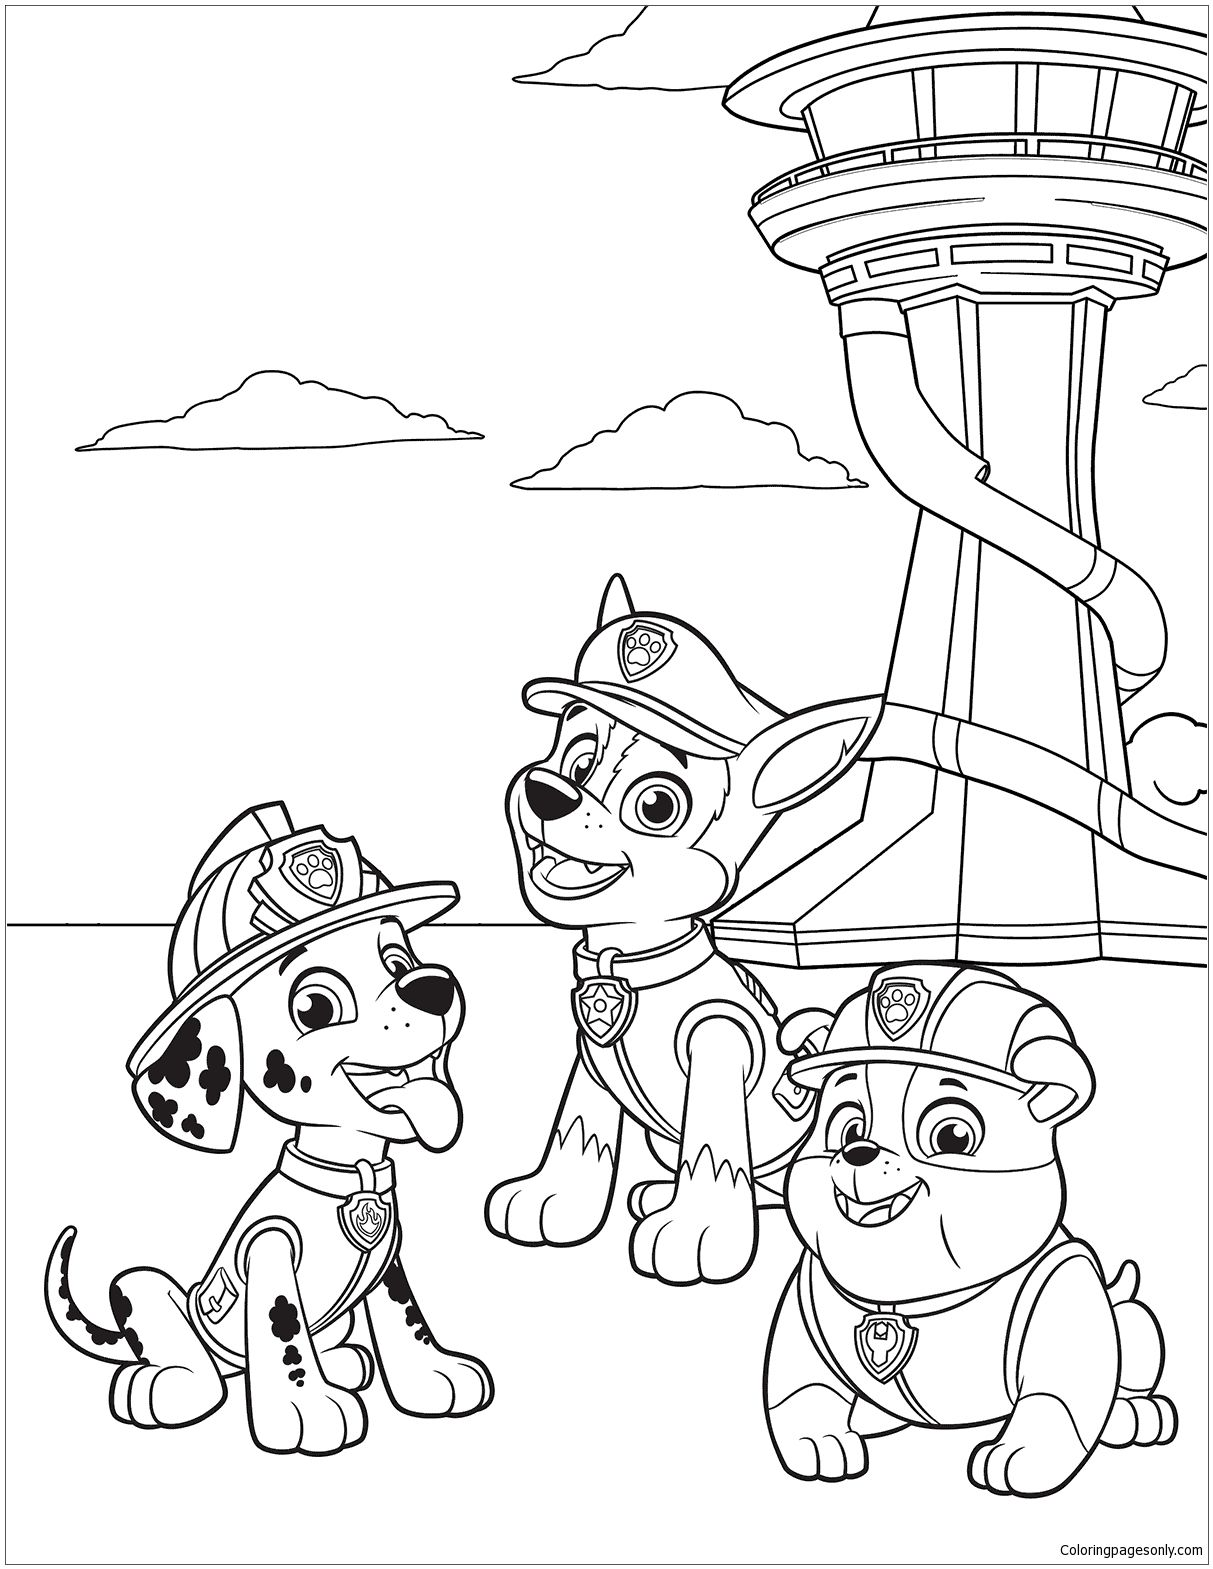 paw patrol coloring sheets printable paw patrol coloring pages coloring home patrol paw coloring sheets printable